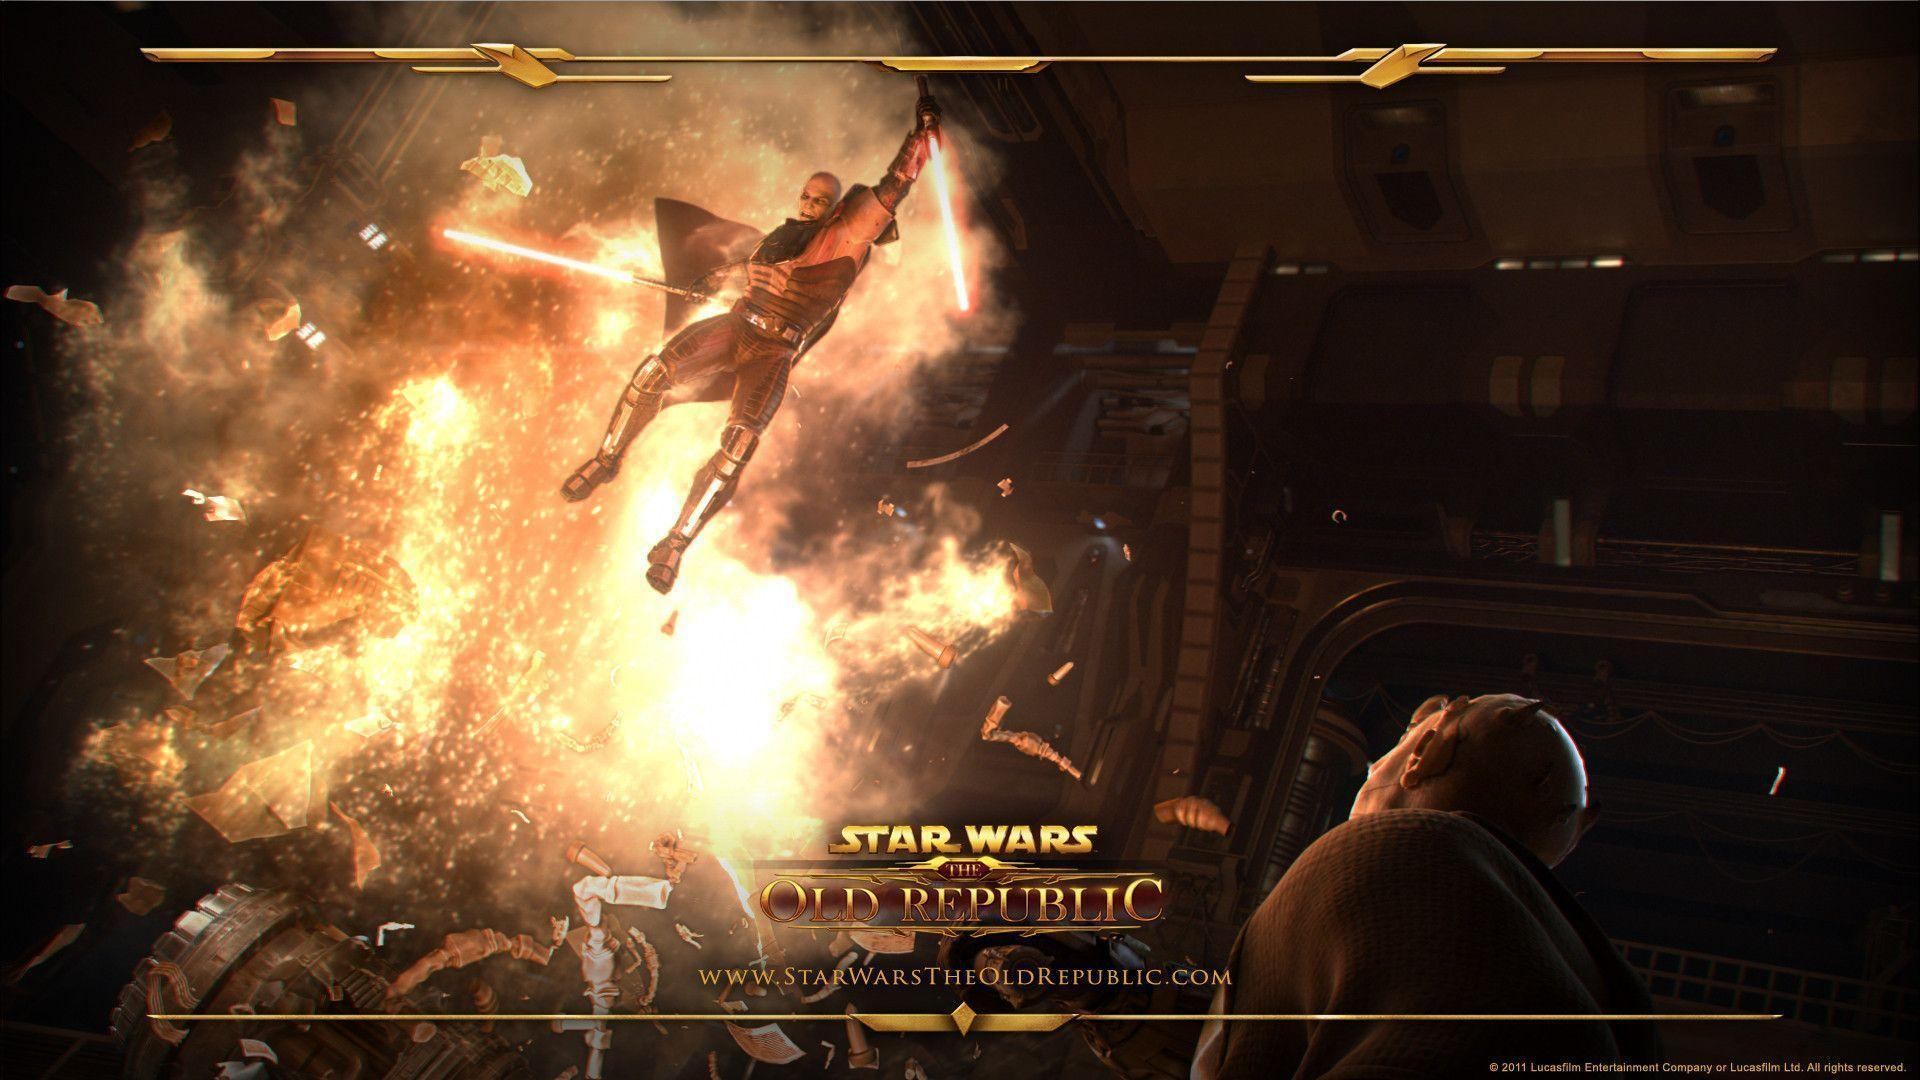 Star Wars the Old Republic HD wallpapers